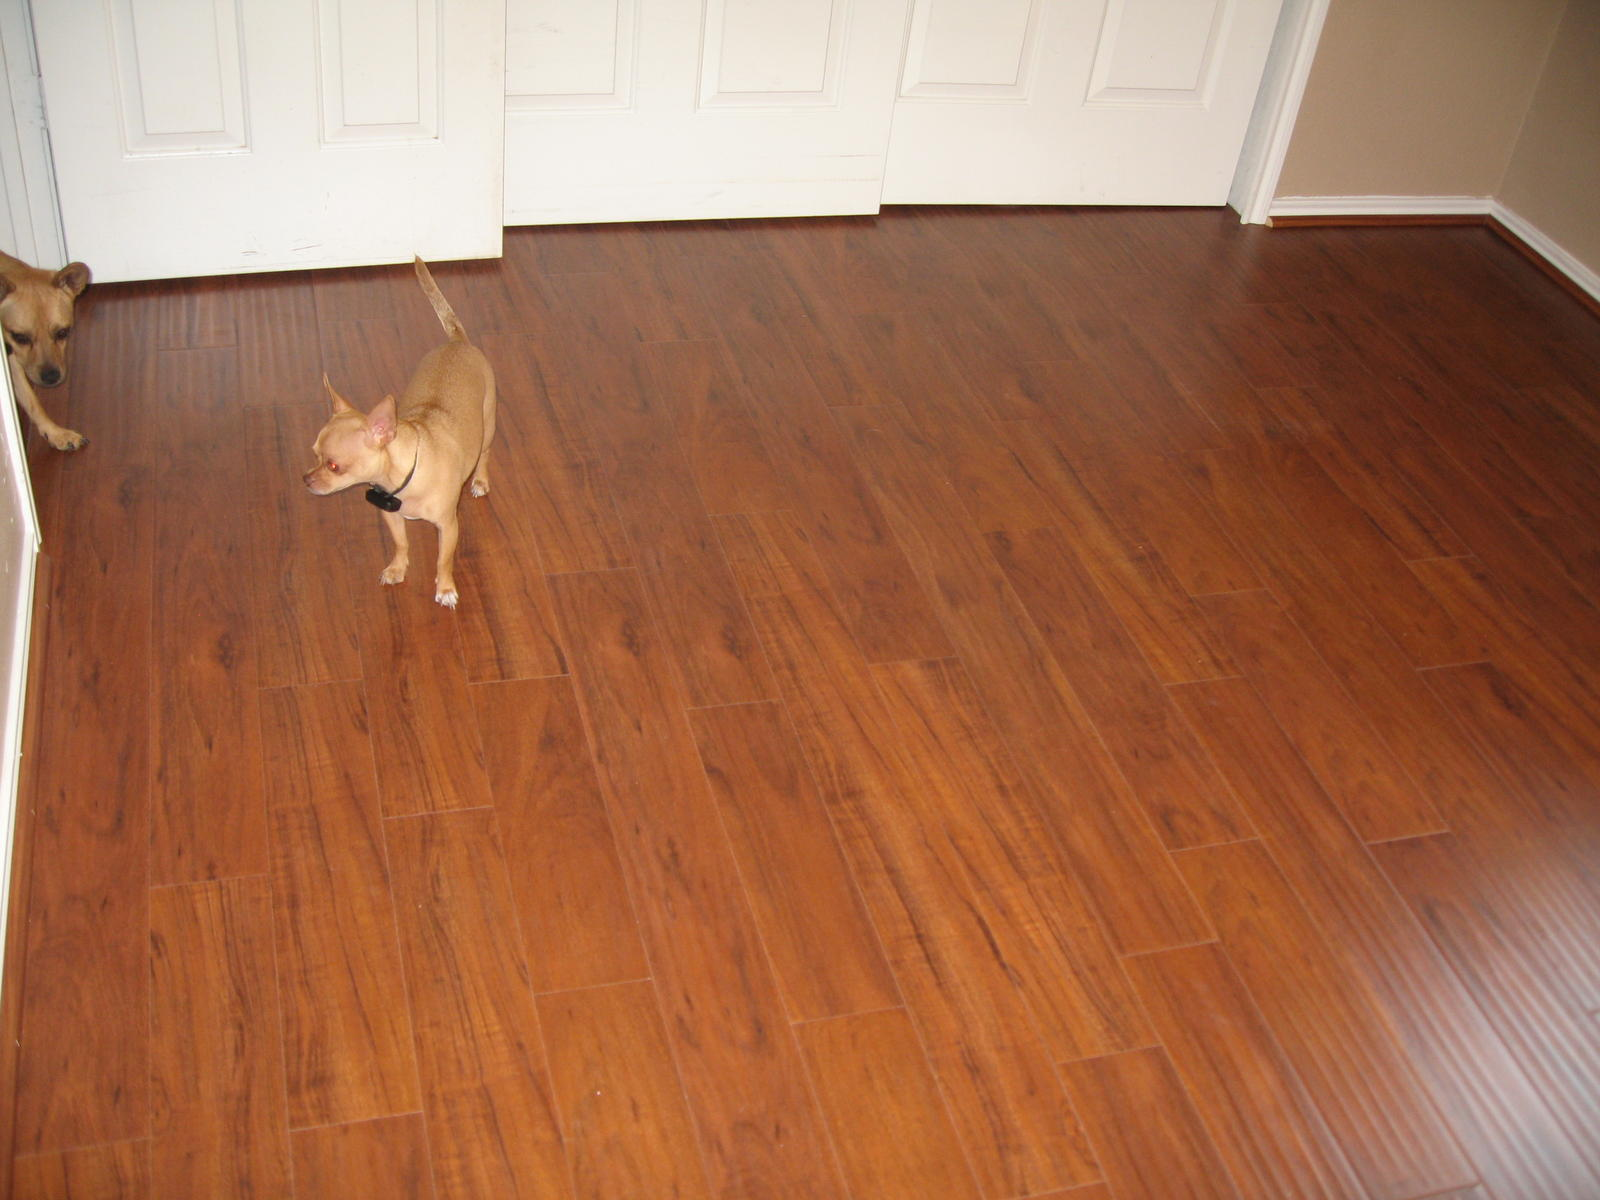 Design Wood Flooring Cost wood laminate flooring cost installed meze blog for hardwood floor install in sa img 1851 jpg